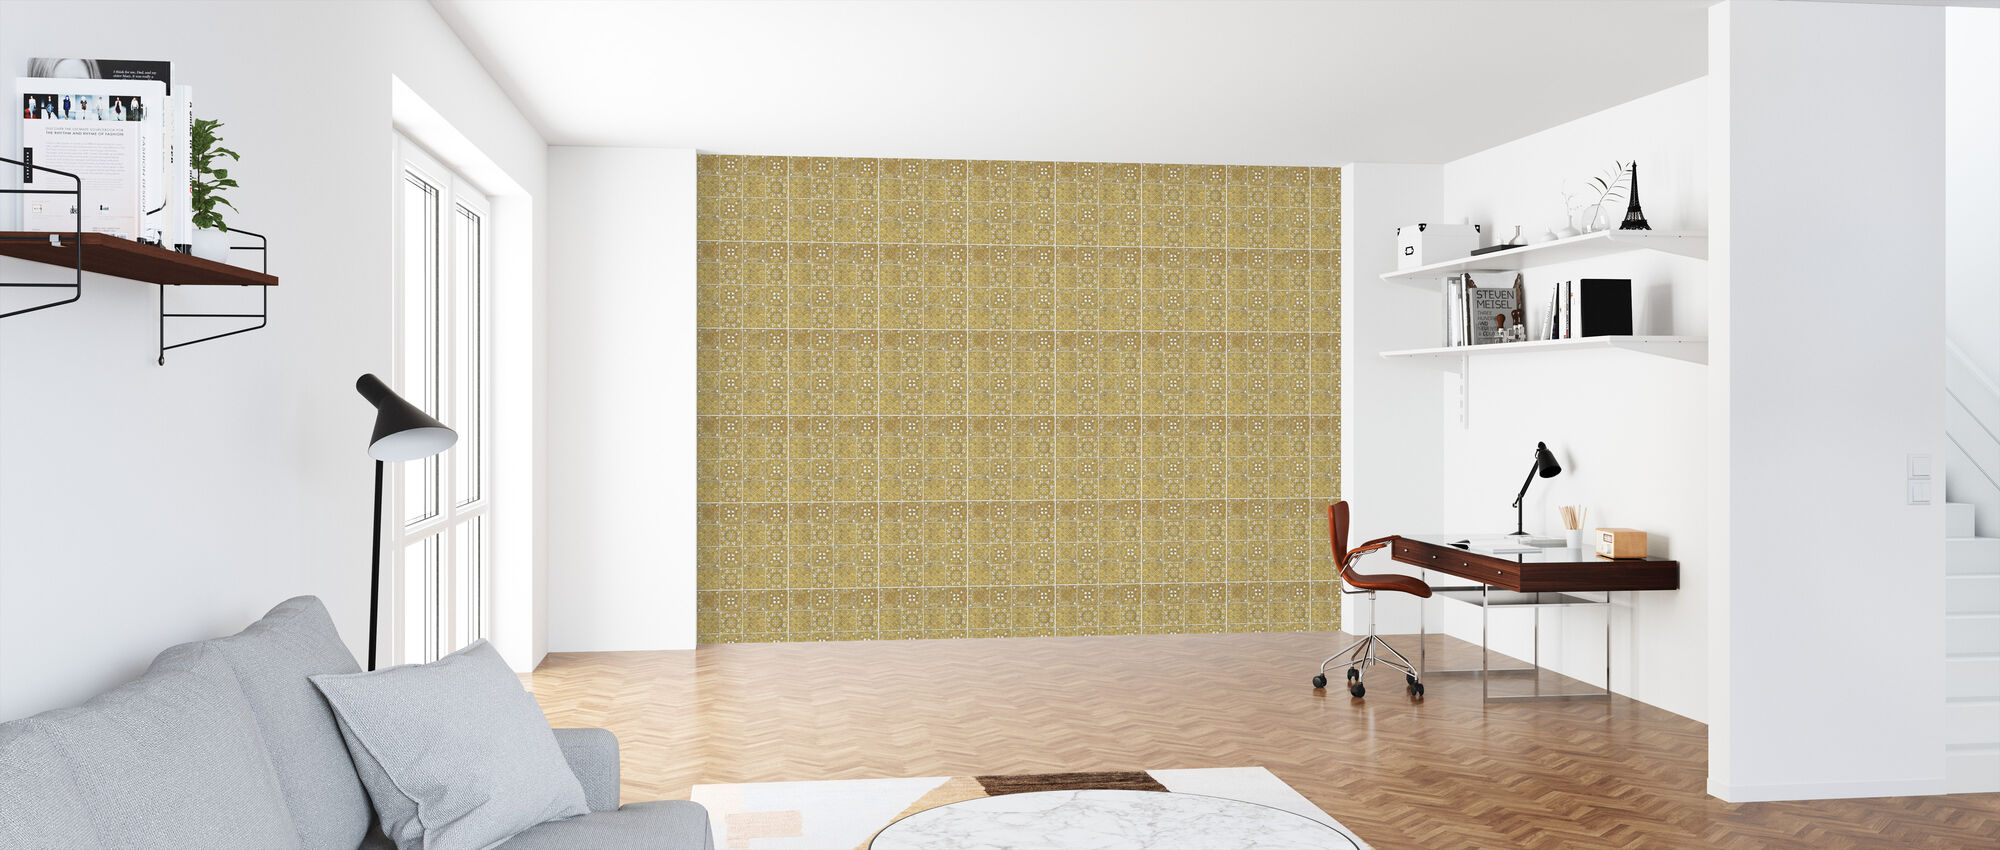 Color my World - Mexican Gold Mandala - Wallpaper - Office